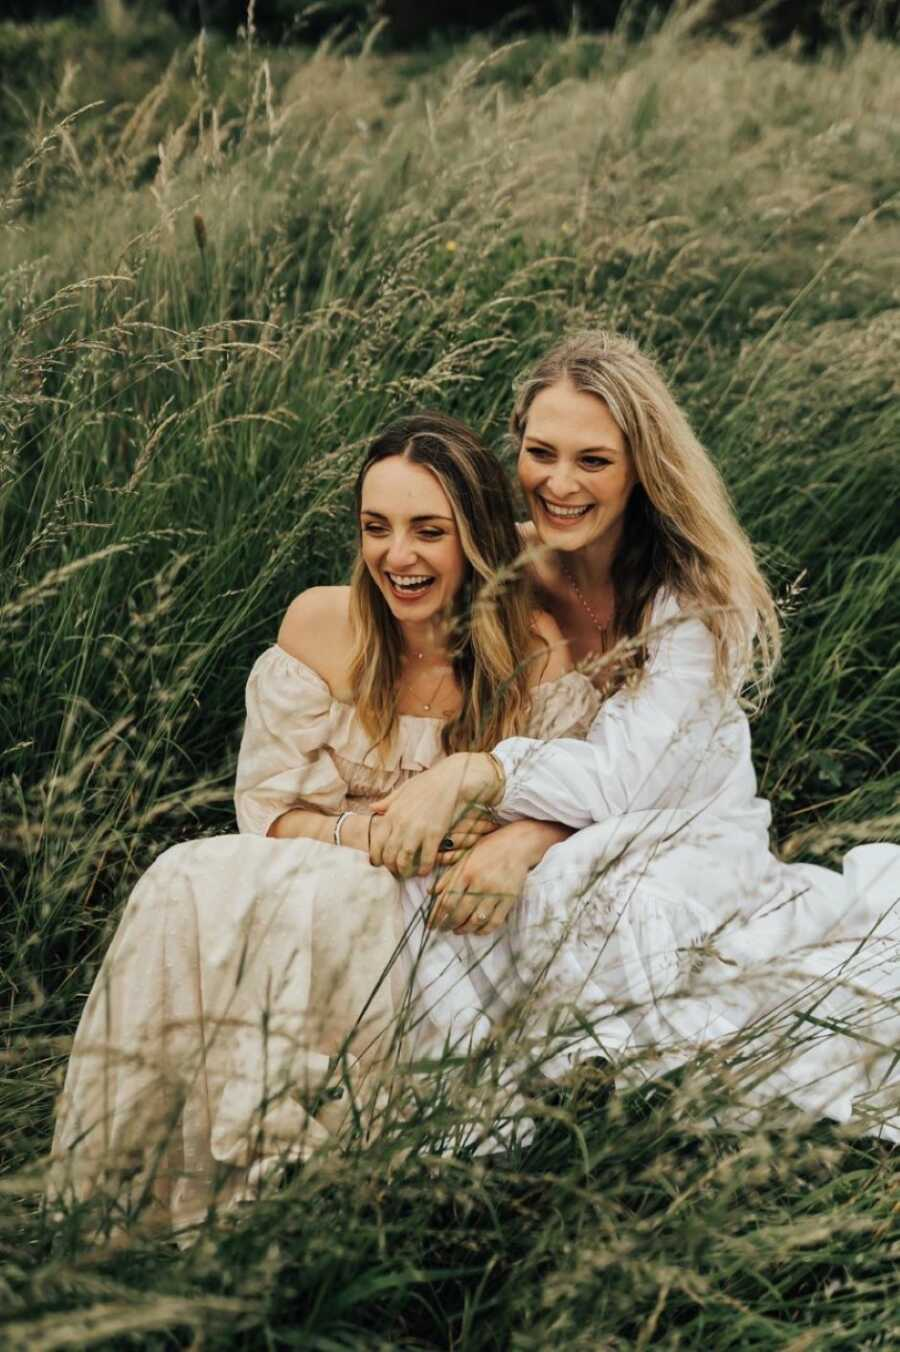 Two women engaged to be married wear long flowy dresses while taking photos in a field of wheat